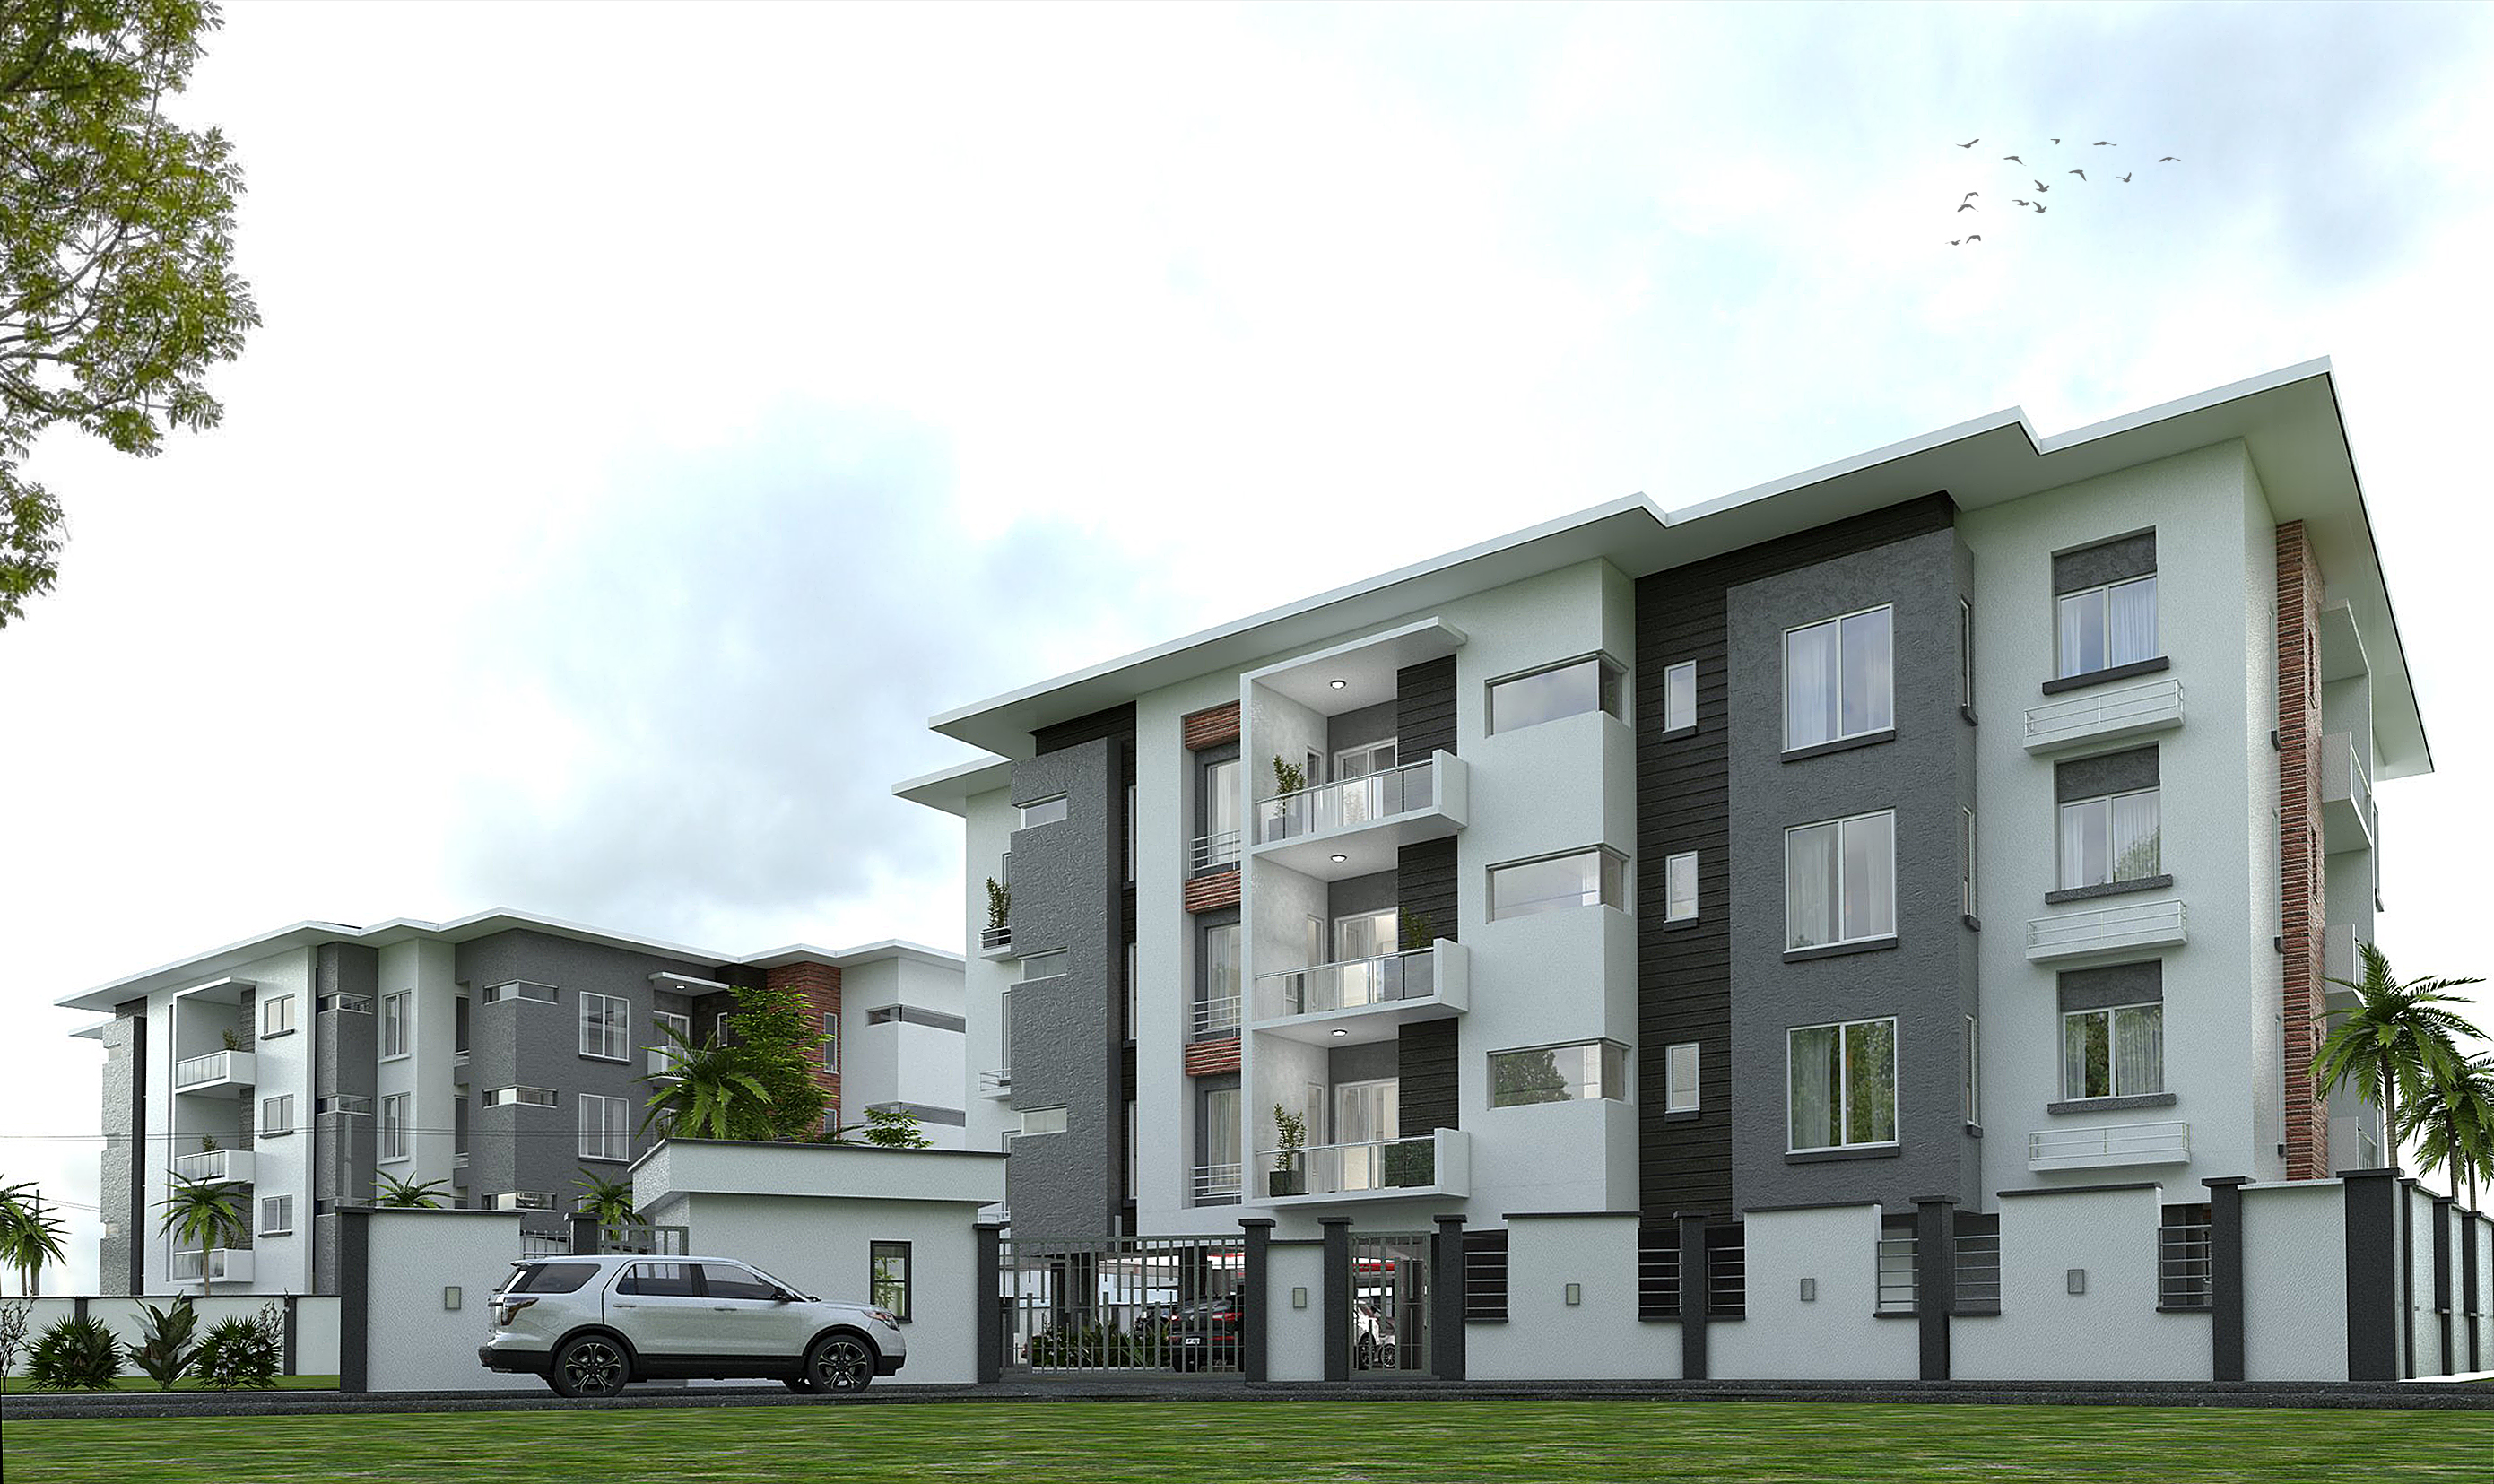 2. SKYWIDE RESIDENCES